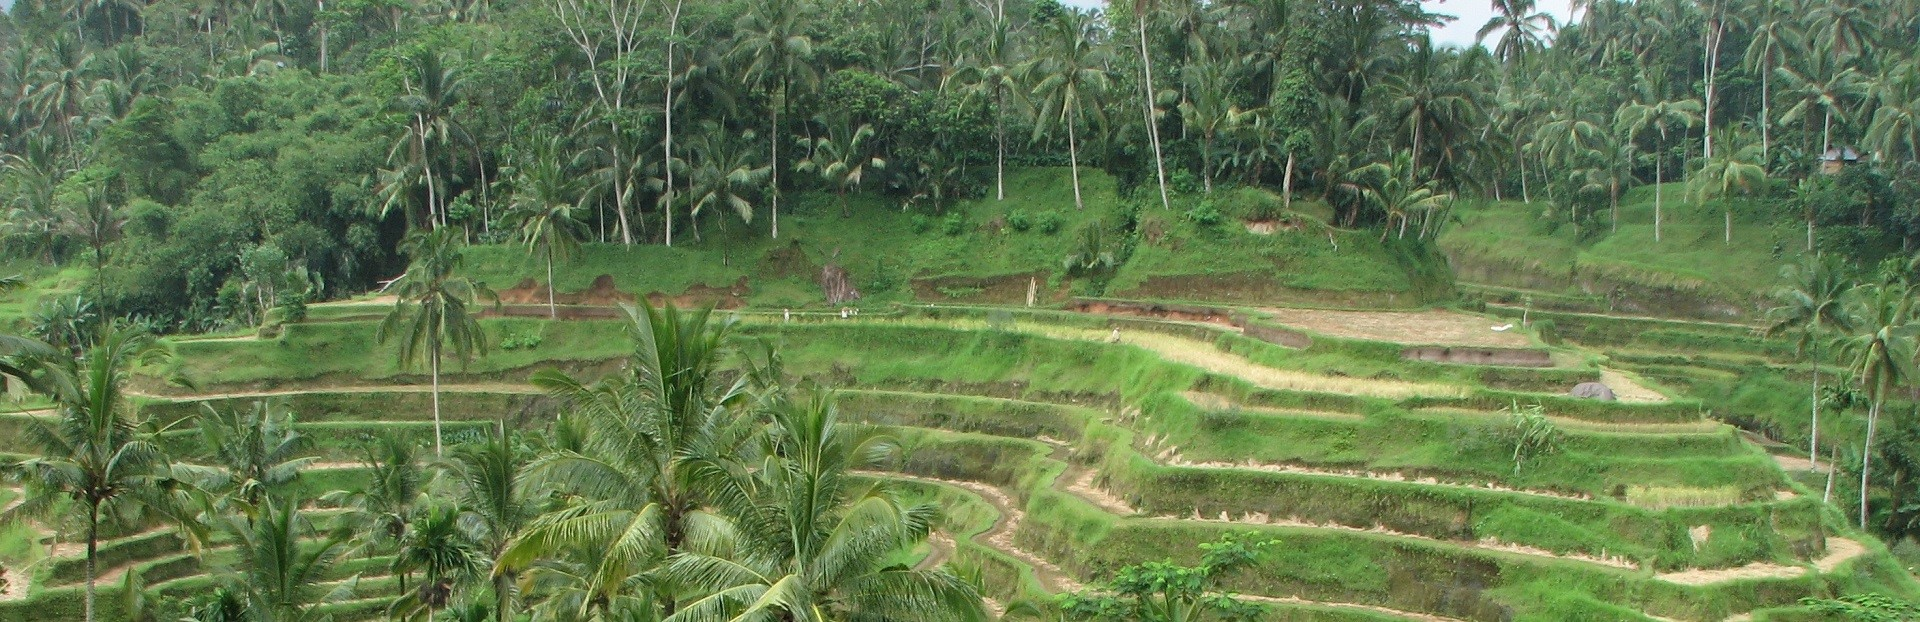 Rice_Terrace_in_Ubud (5)